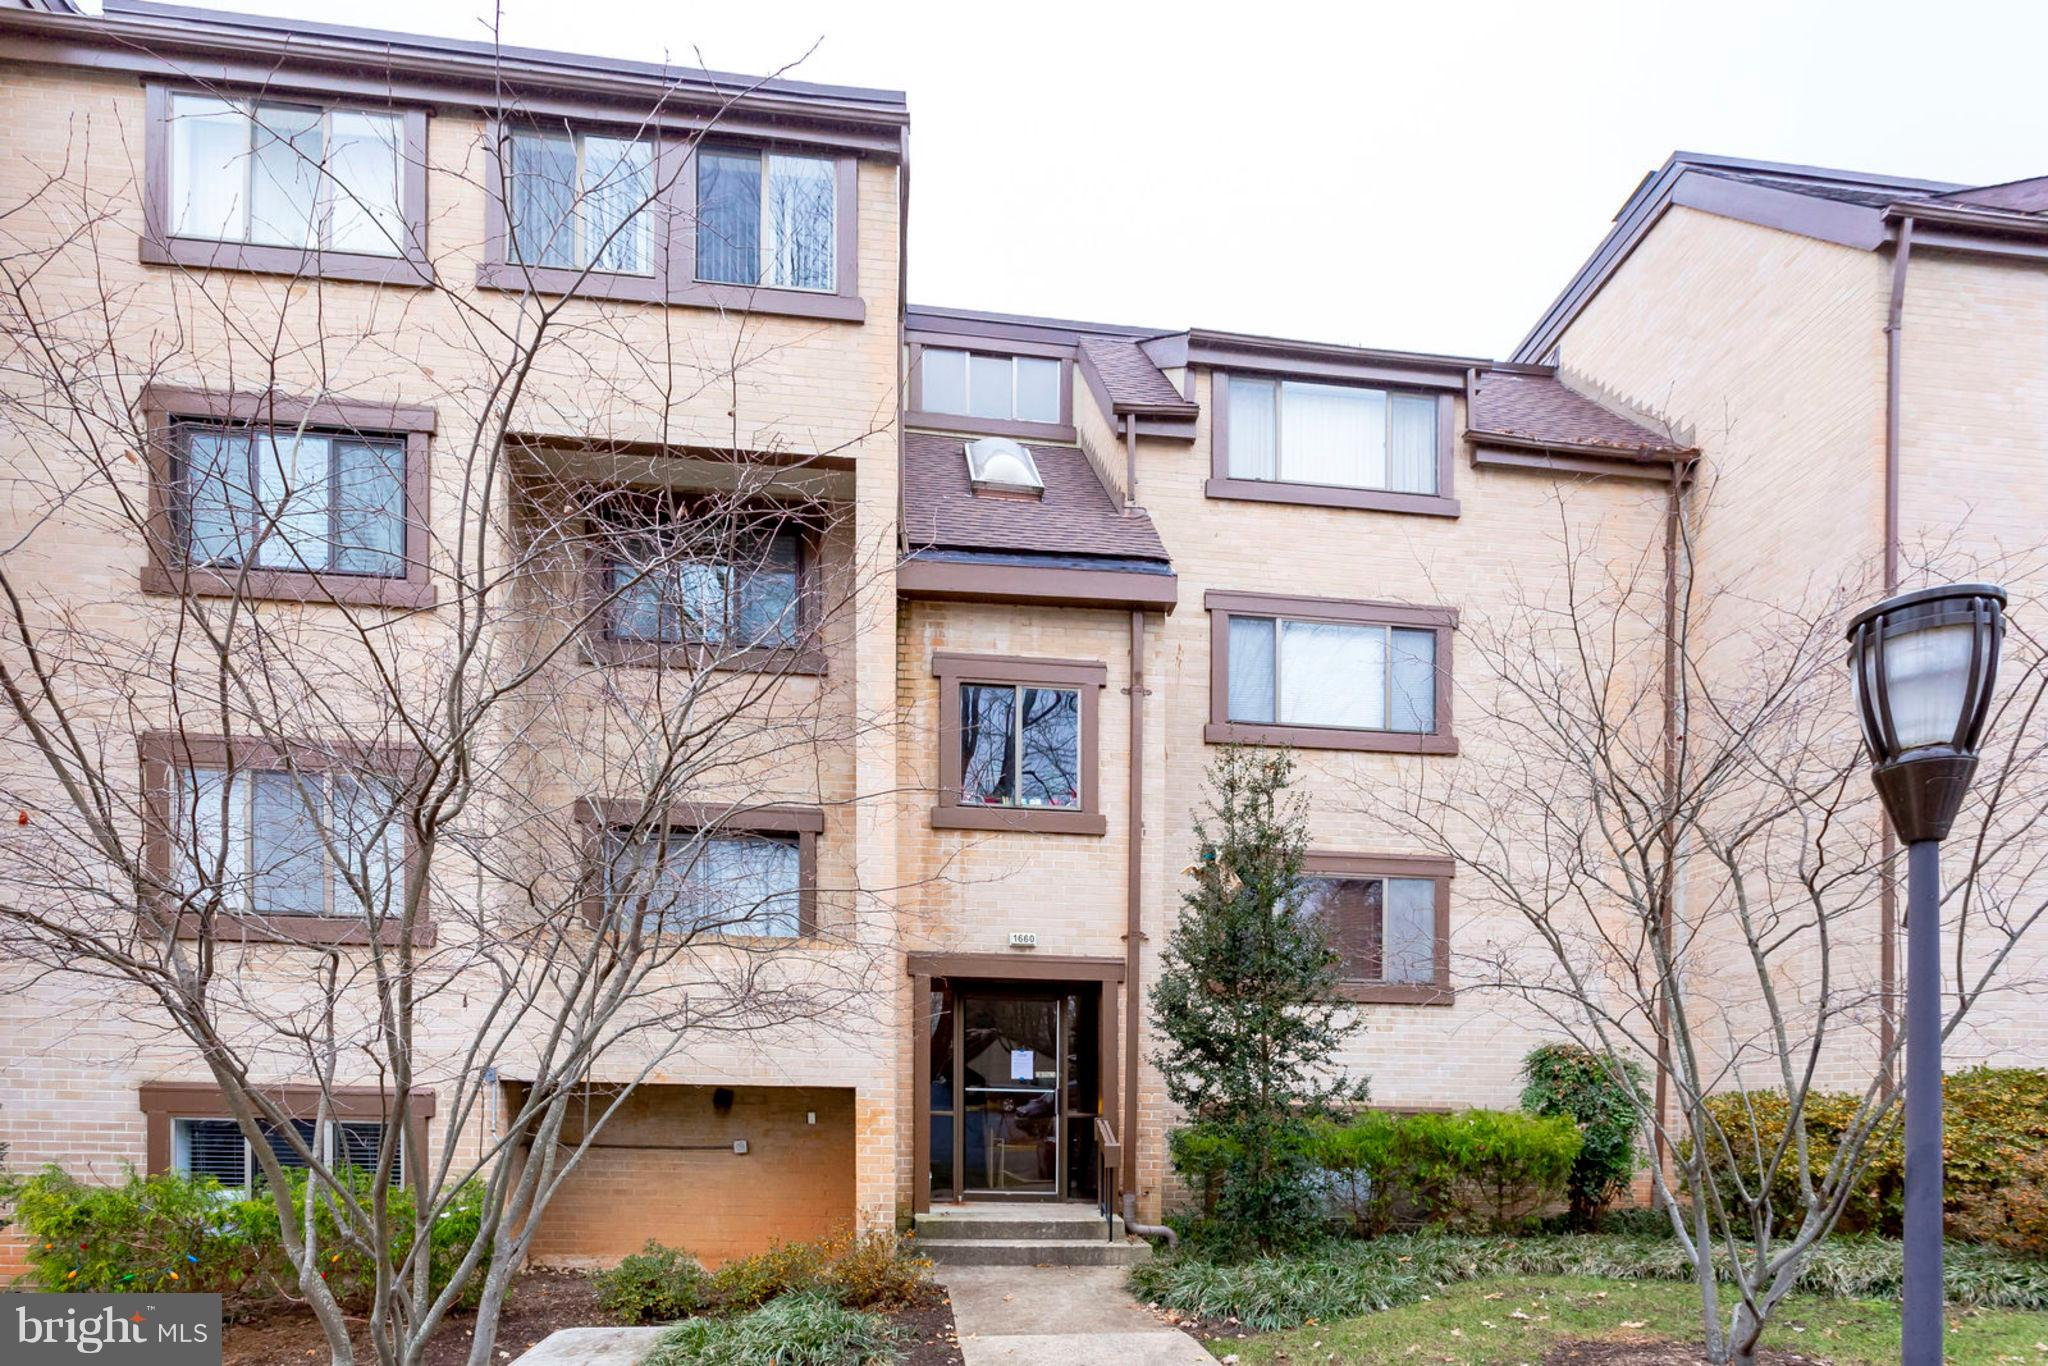 Super clean Condo in excellent location! 2 assigned covered parking spots with New Carpet, and Freshly Painted! HVAC replaced in 2015. This move in ready home has large bedroom with walk in closet, and updated full bath! Backs to woods with walking trails. Washer and Dryer inside the unit! Within walking distance to Wiehle Metro, Restaurants, Golf Course, Pool, and Parks.  Close to Reston Town Center, Lake Fairfax,  and Lake Anne. Condo Fee covers Water, Gas, and Electricity! Must See and Wont Last Long!